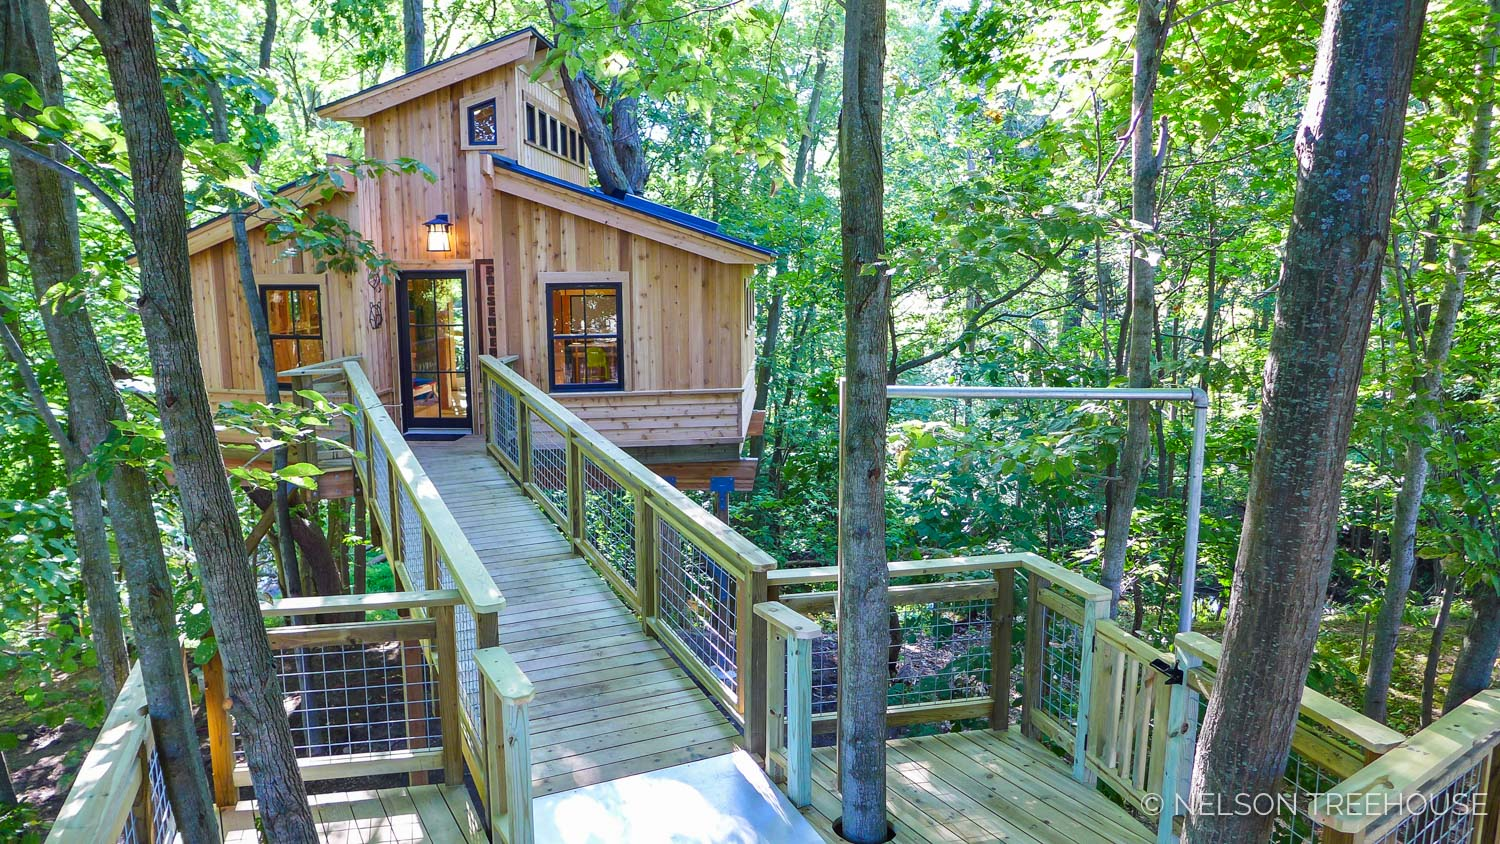 All The Places You Can Go To Visit A Nelson Treehouse Nelson